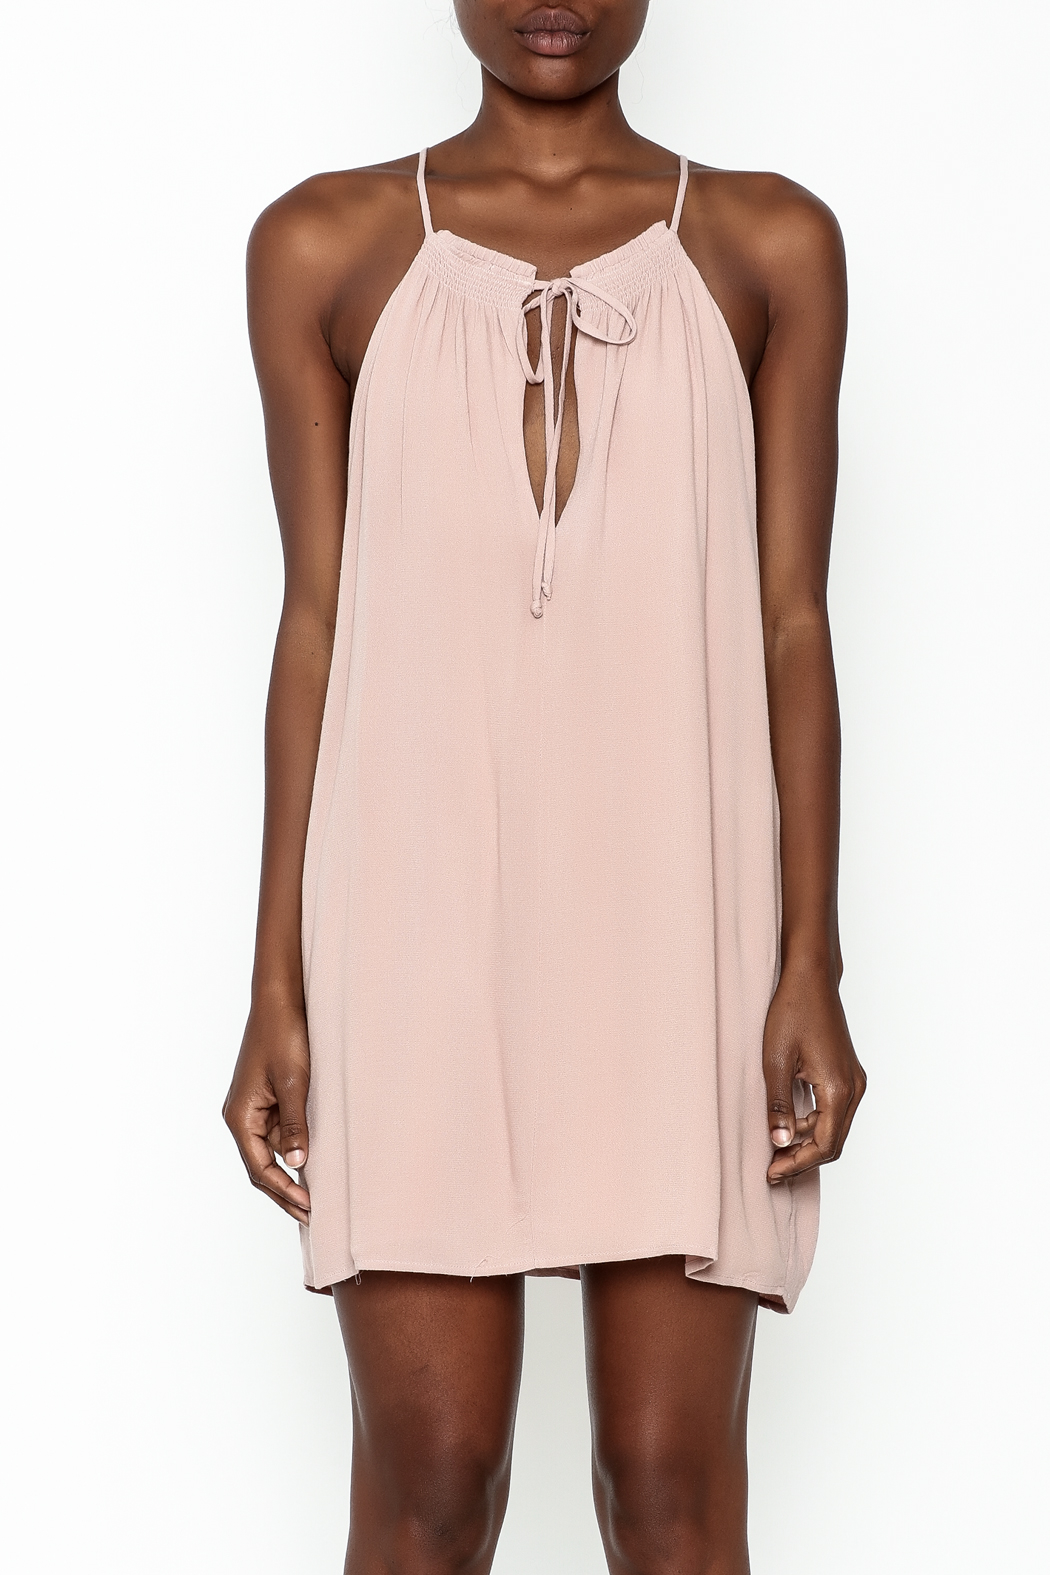 Cotton Candy LA Clemence Dress - Front Full Image